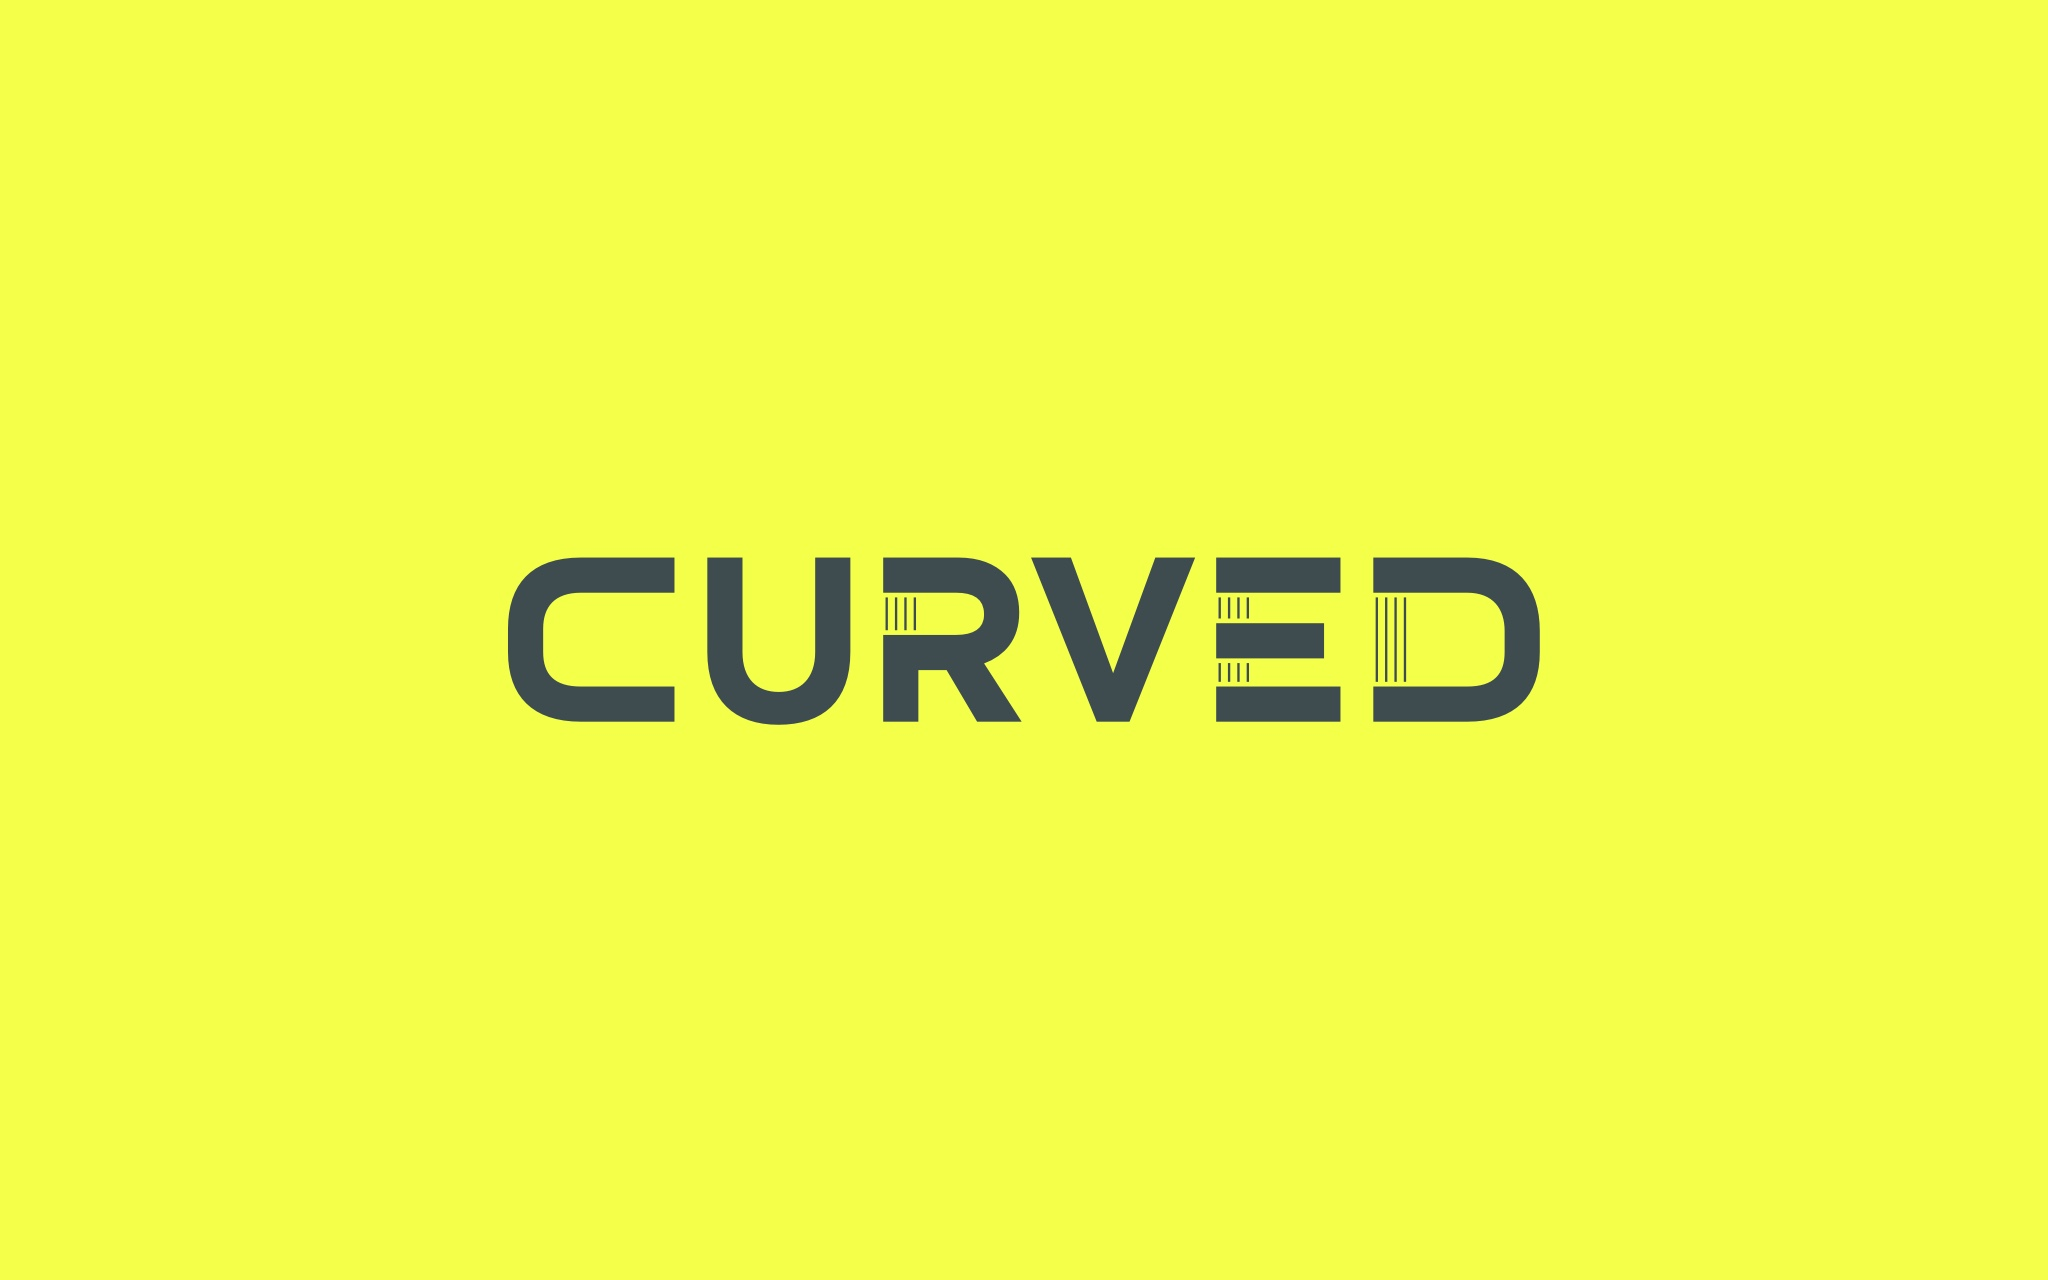 curved content marketing